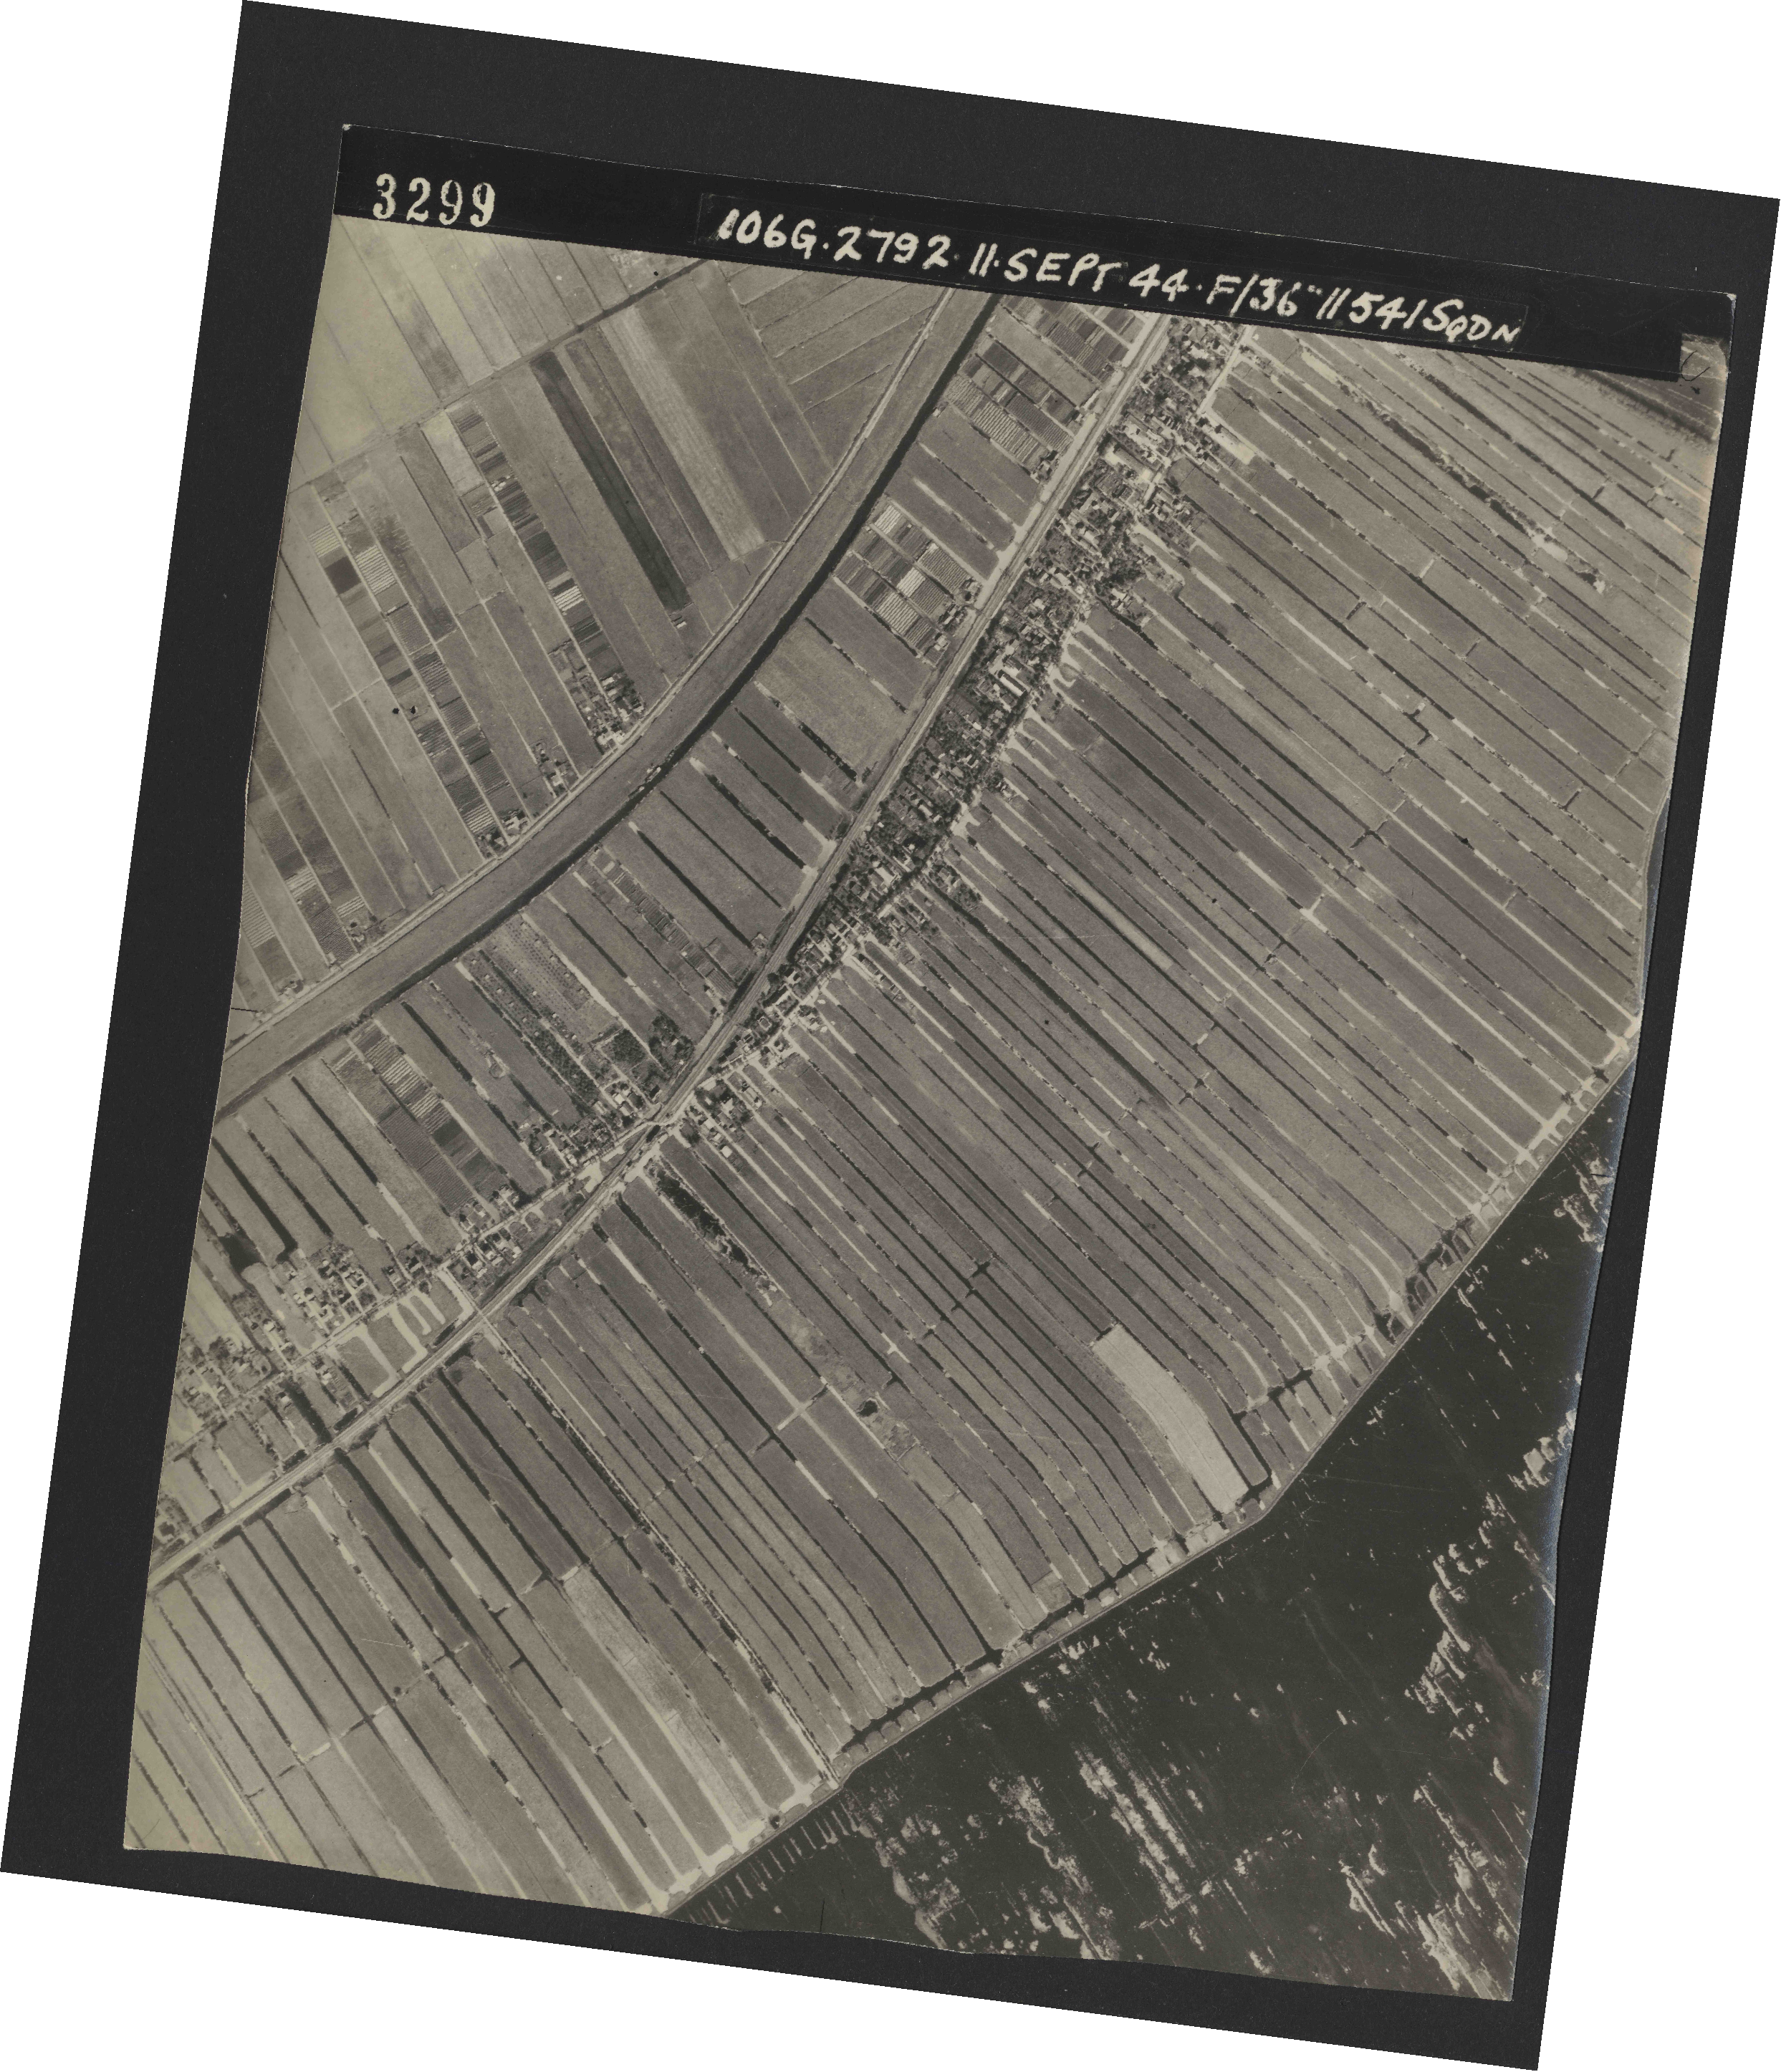 Collection RAF aerial photos 1940-1945 - flight 223, run 13, photo 3299